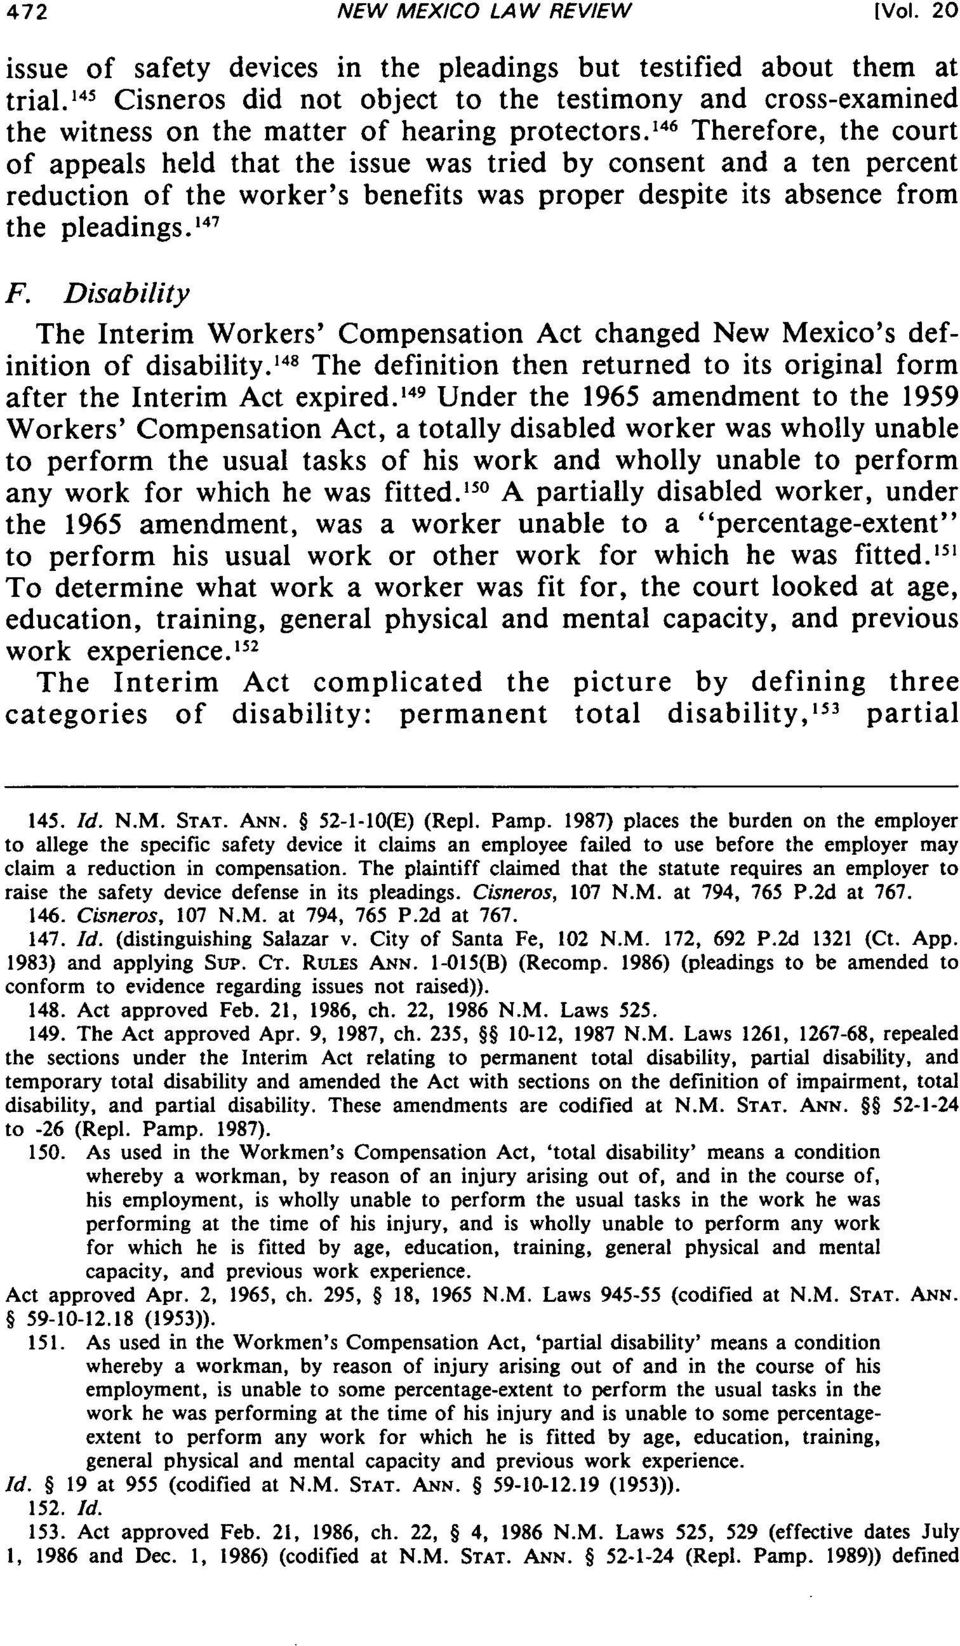 146 Therefore, the court of appeals held that the issue was tried by consent and a ten percent reduction of the worker's benefits was proper despite its absence from the pleadings. 47 F.